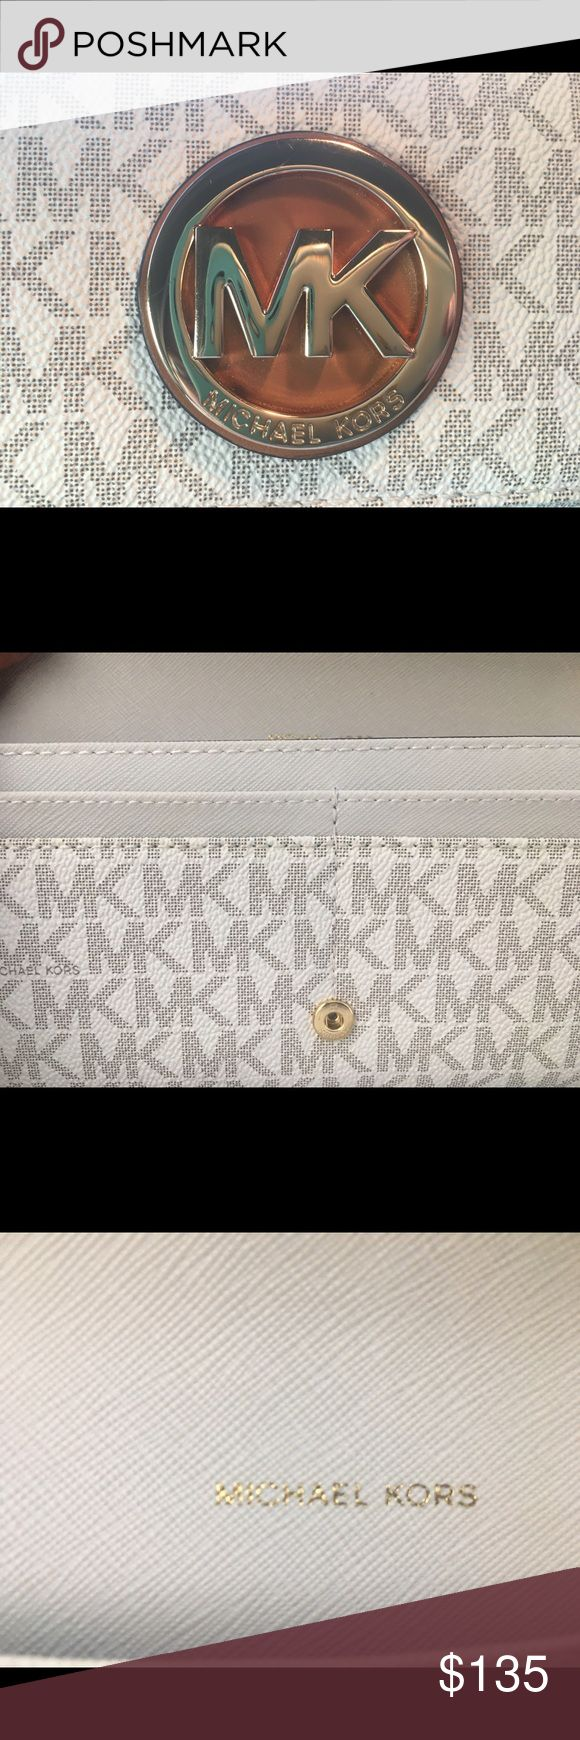 💎MK💎 WHITE/GOLD MICHAEL KORS wallet 👑💎🙌🏻💕 Gorgeous MICHAEL KORS wallet. This wallet has many pockets! Fits well in the hand. Dimensions of the wallet are: 8 inches wide, 4.5 inches high (closed); 8 inches wide, 8 inches high (open). >>open to reasonable offers << Michael Kors Bags Wallets